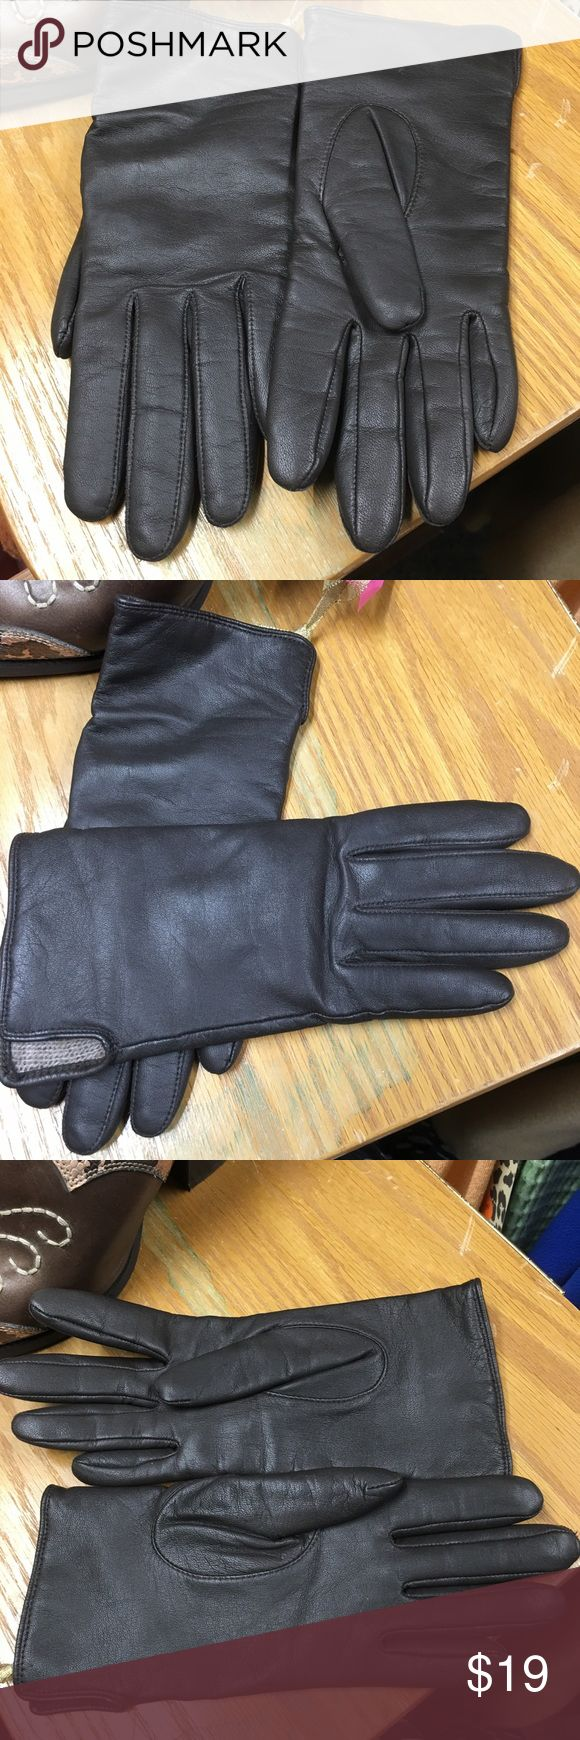 Ladies leather gloves xs - Xs Ladies Brown Leather Gloves